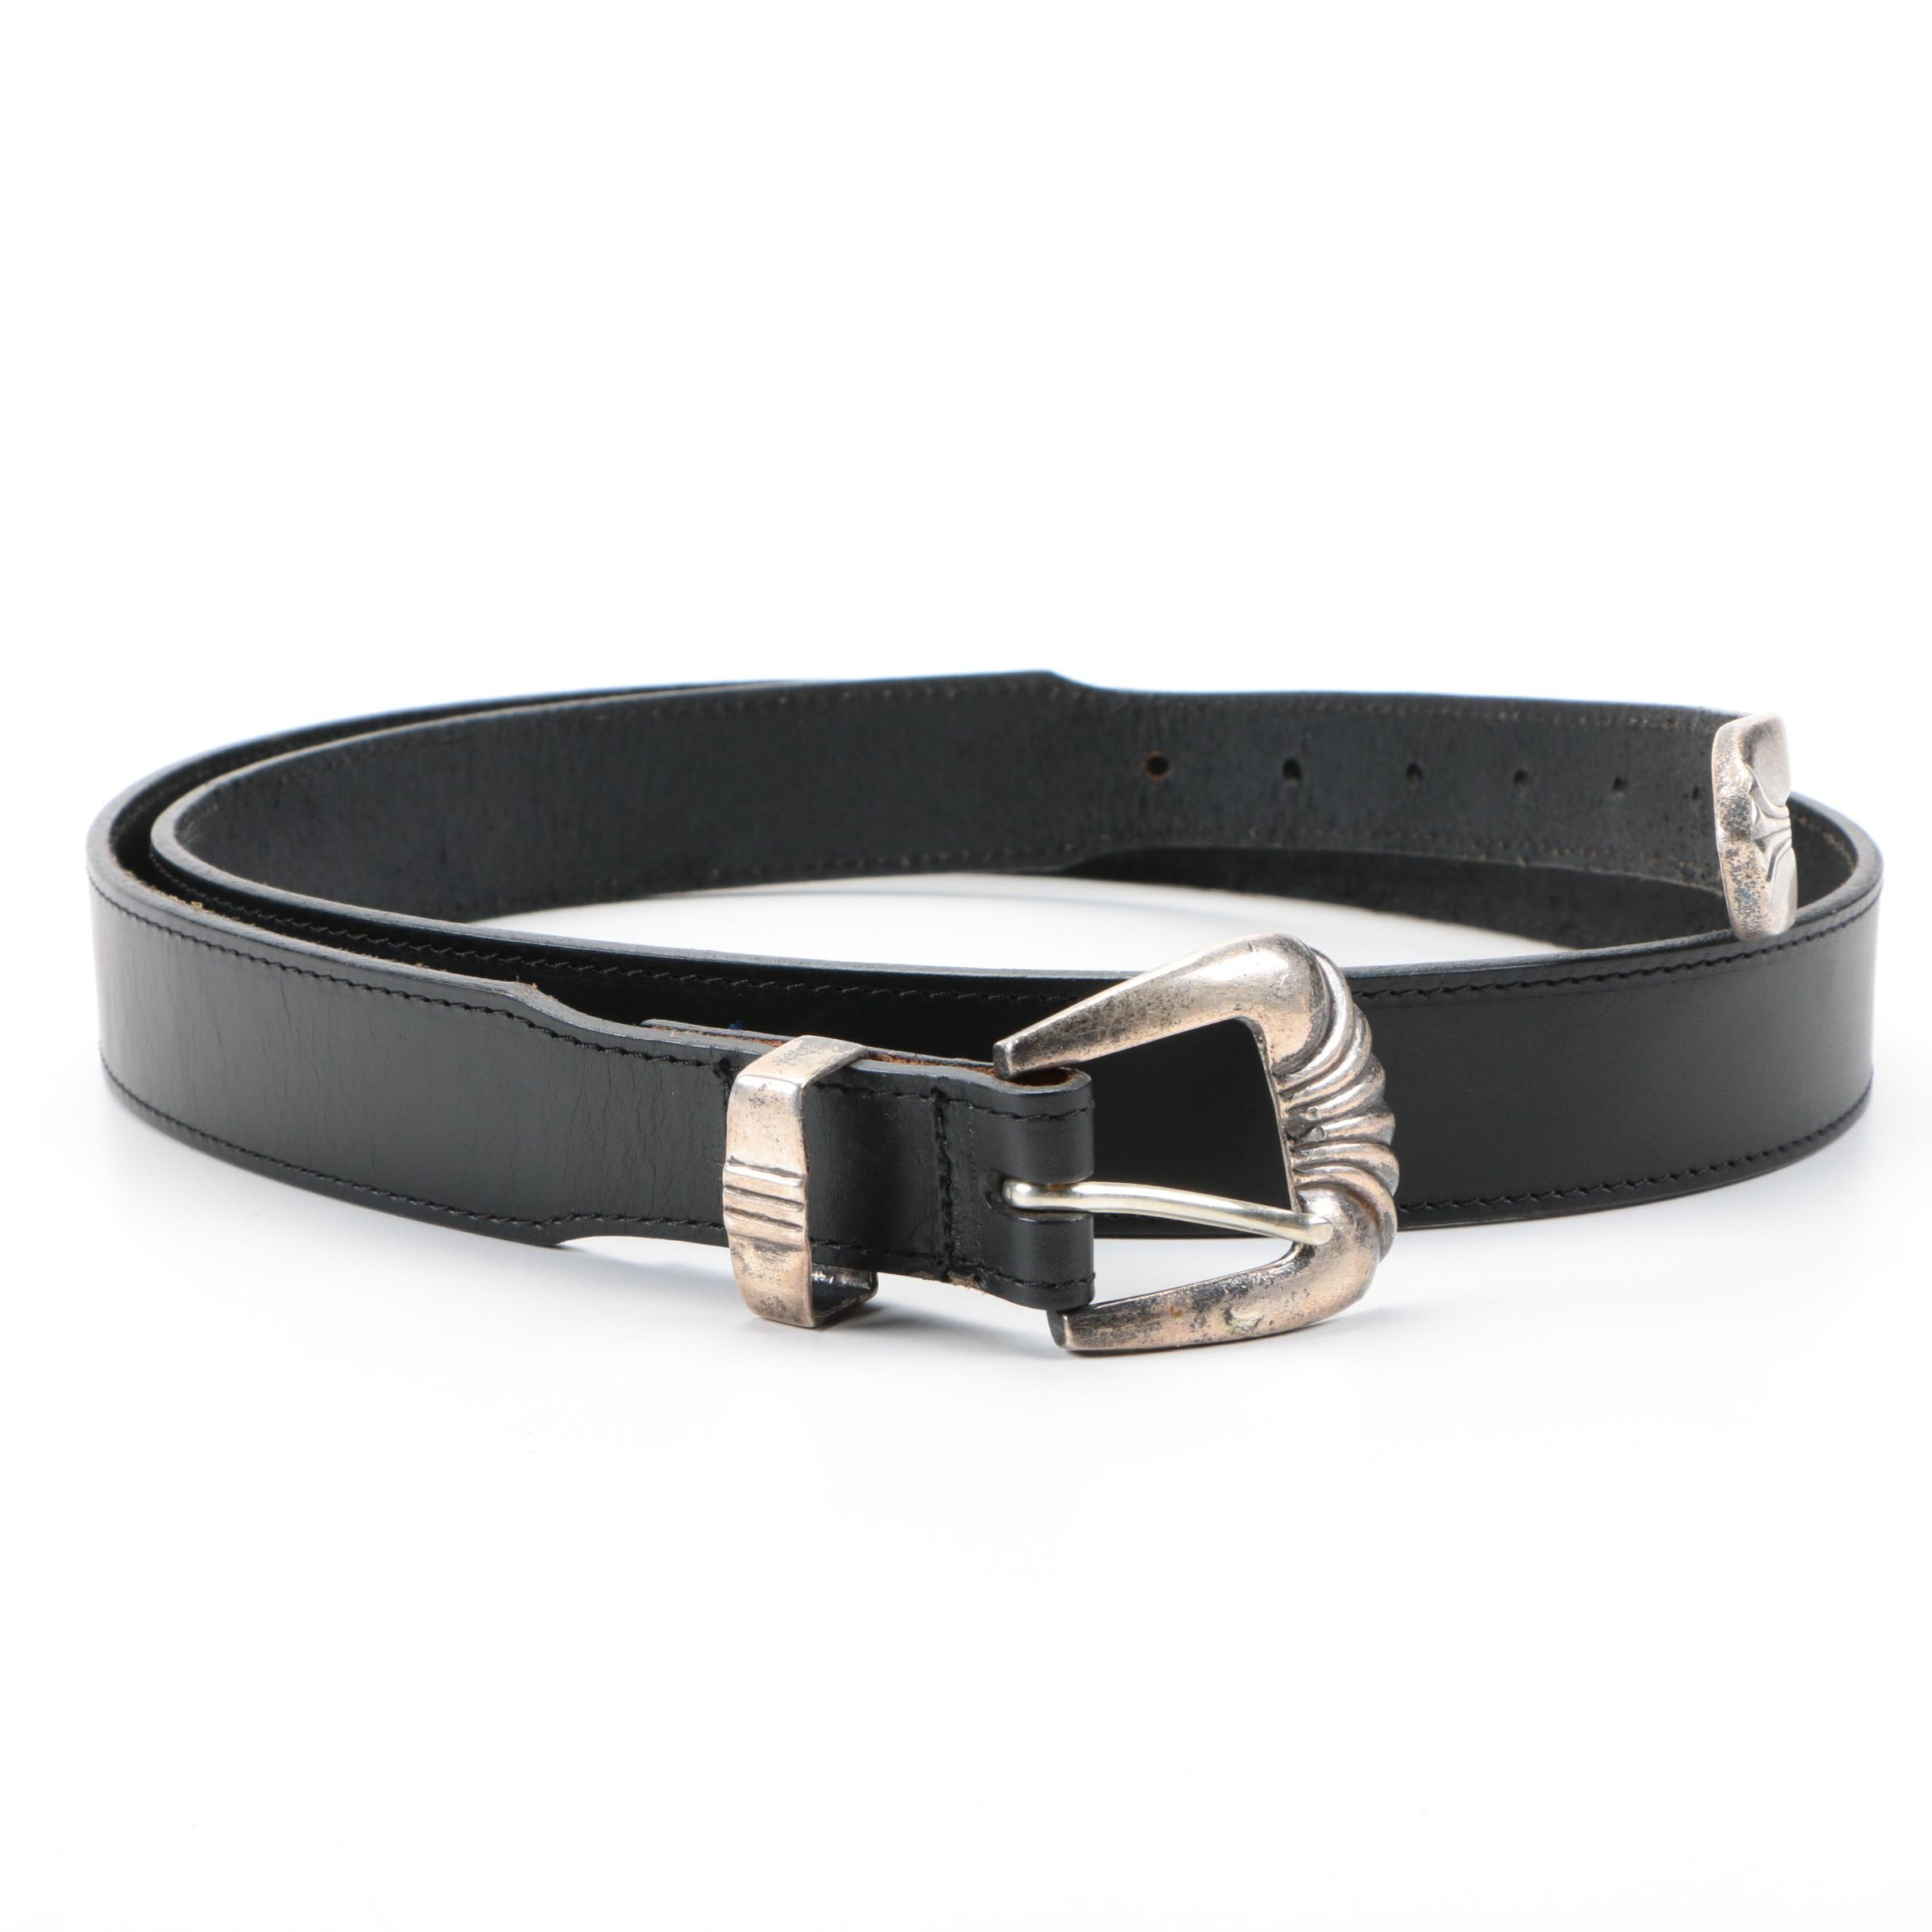 Men's Sterling Silver and Leather Belt